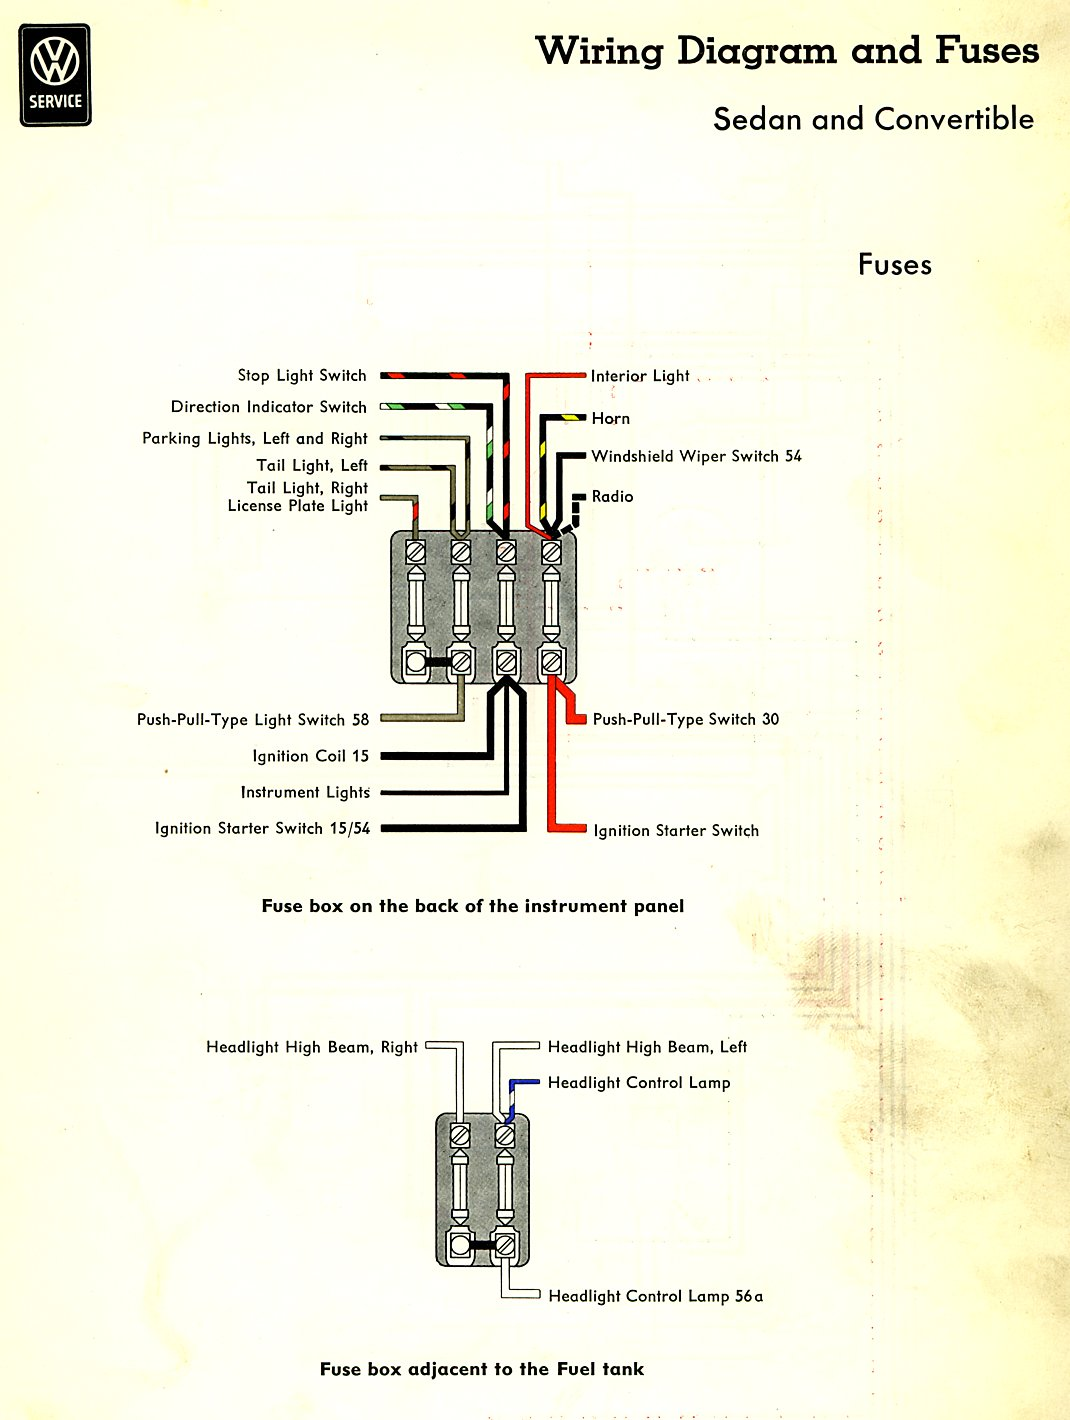 Volkswagen Beetle Fuse Diagram Guide And Troubleshooting Of Wiring 2012 Vw Box 1962 Free Car Diagrams